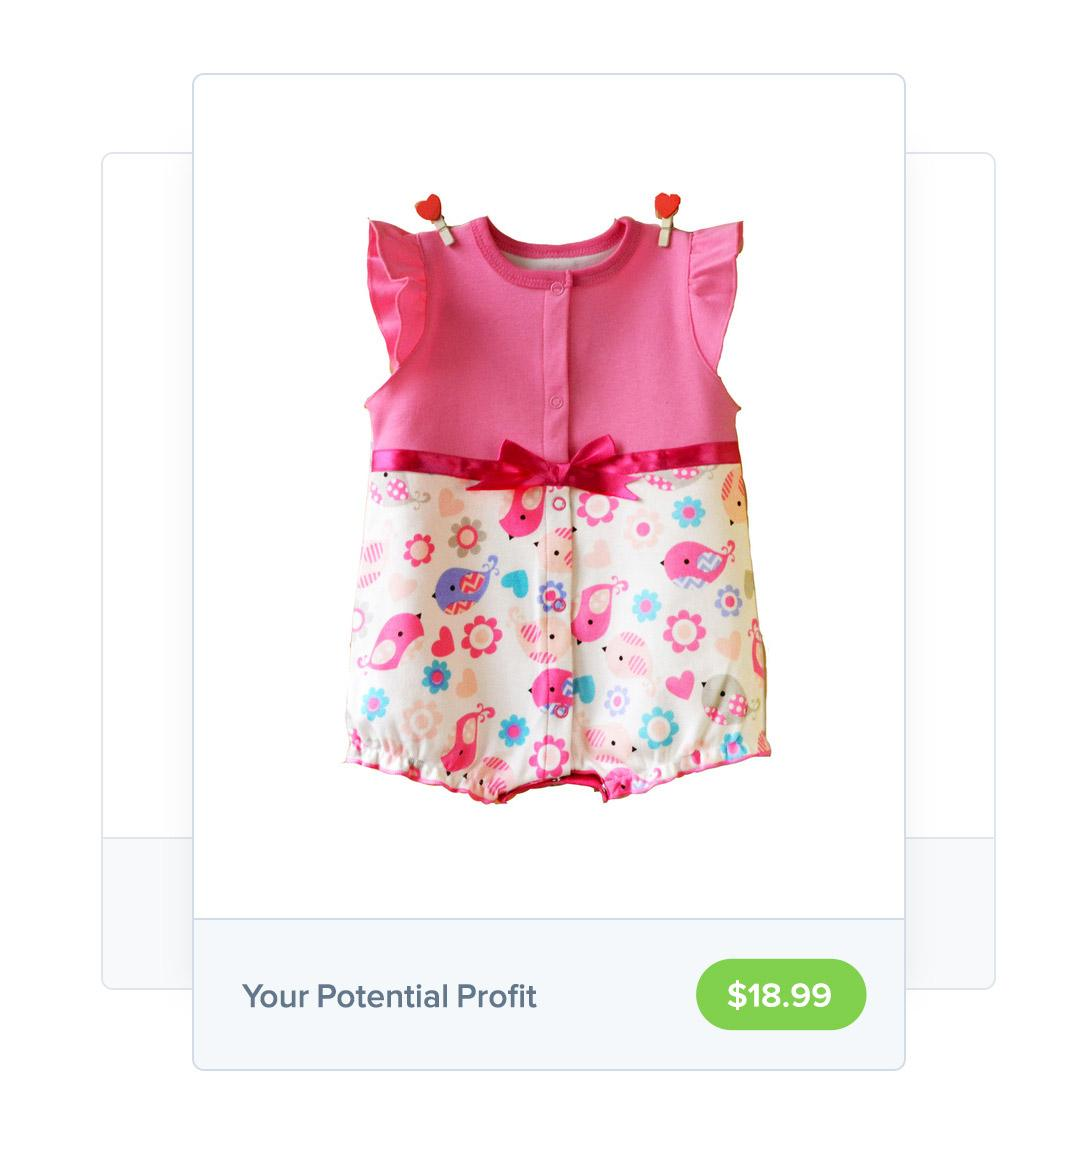 Laundry Bag For Baby Clothes Find Baby Clothes Suppliers To Sell Online Start